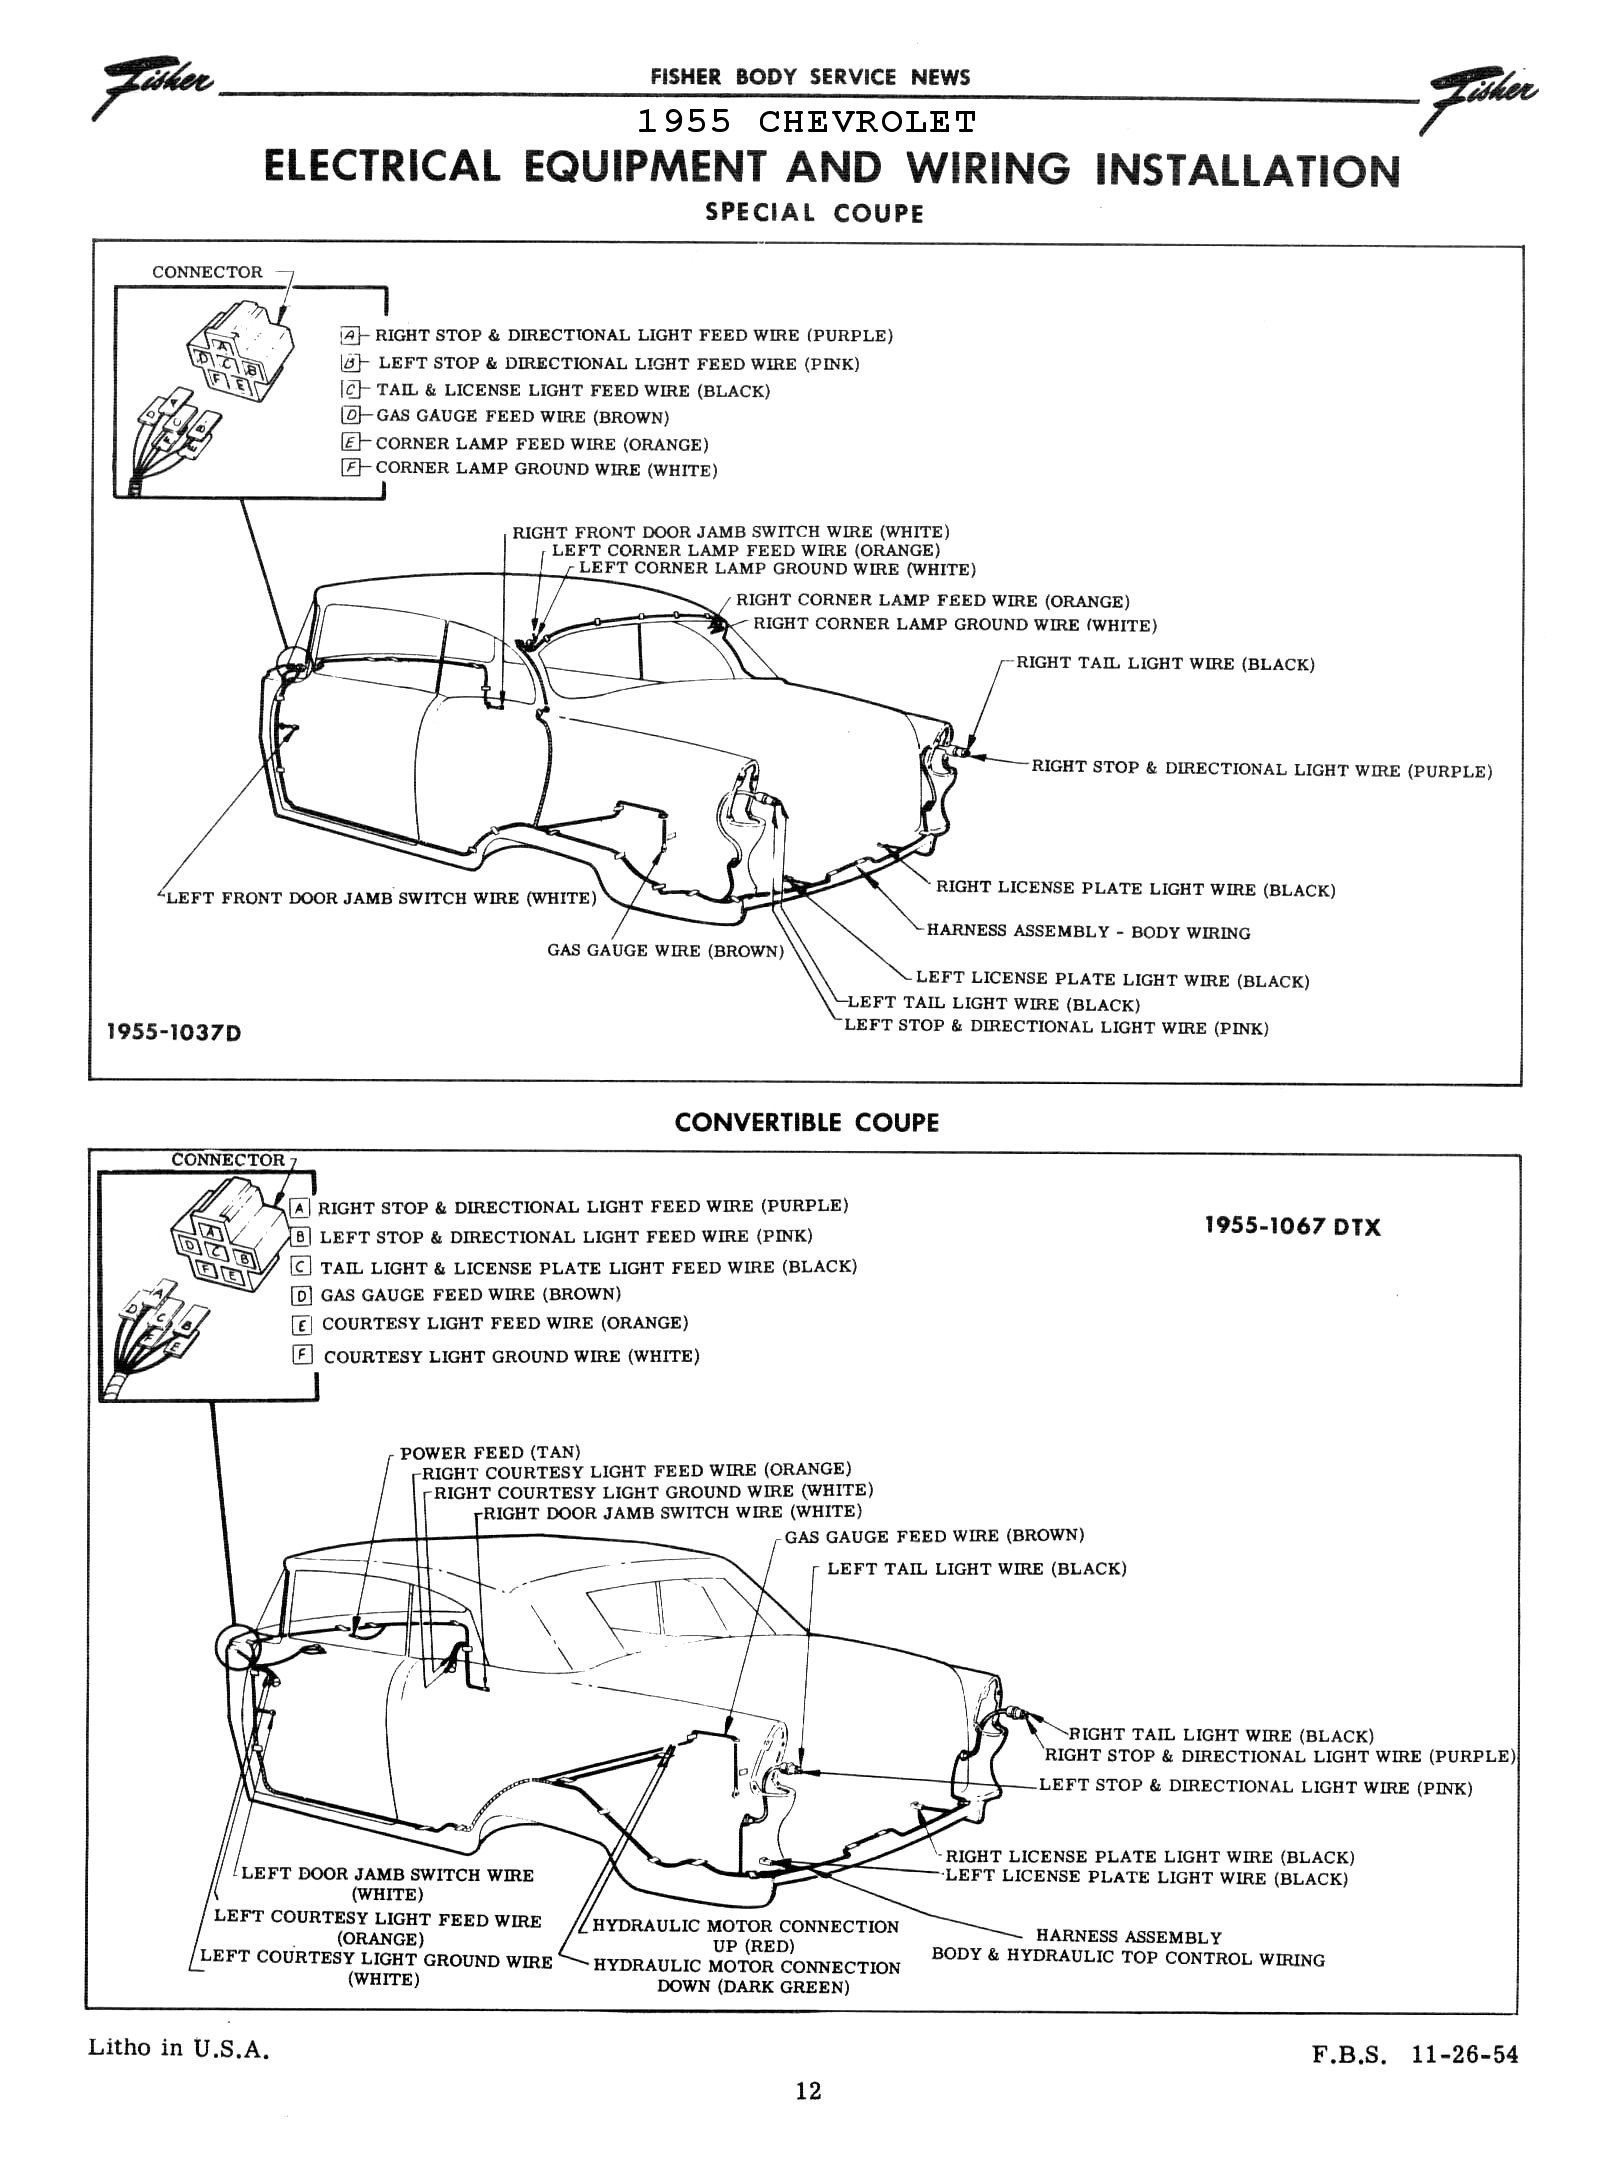 55fsn140612 chevy wiring diagrams 1956 chevy wiring diagram at readyjetset.co